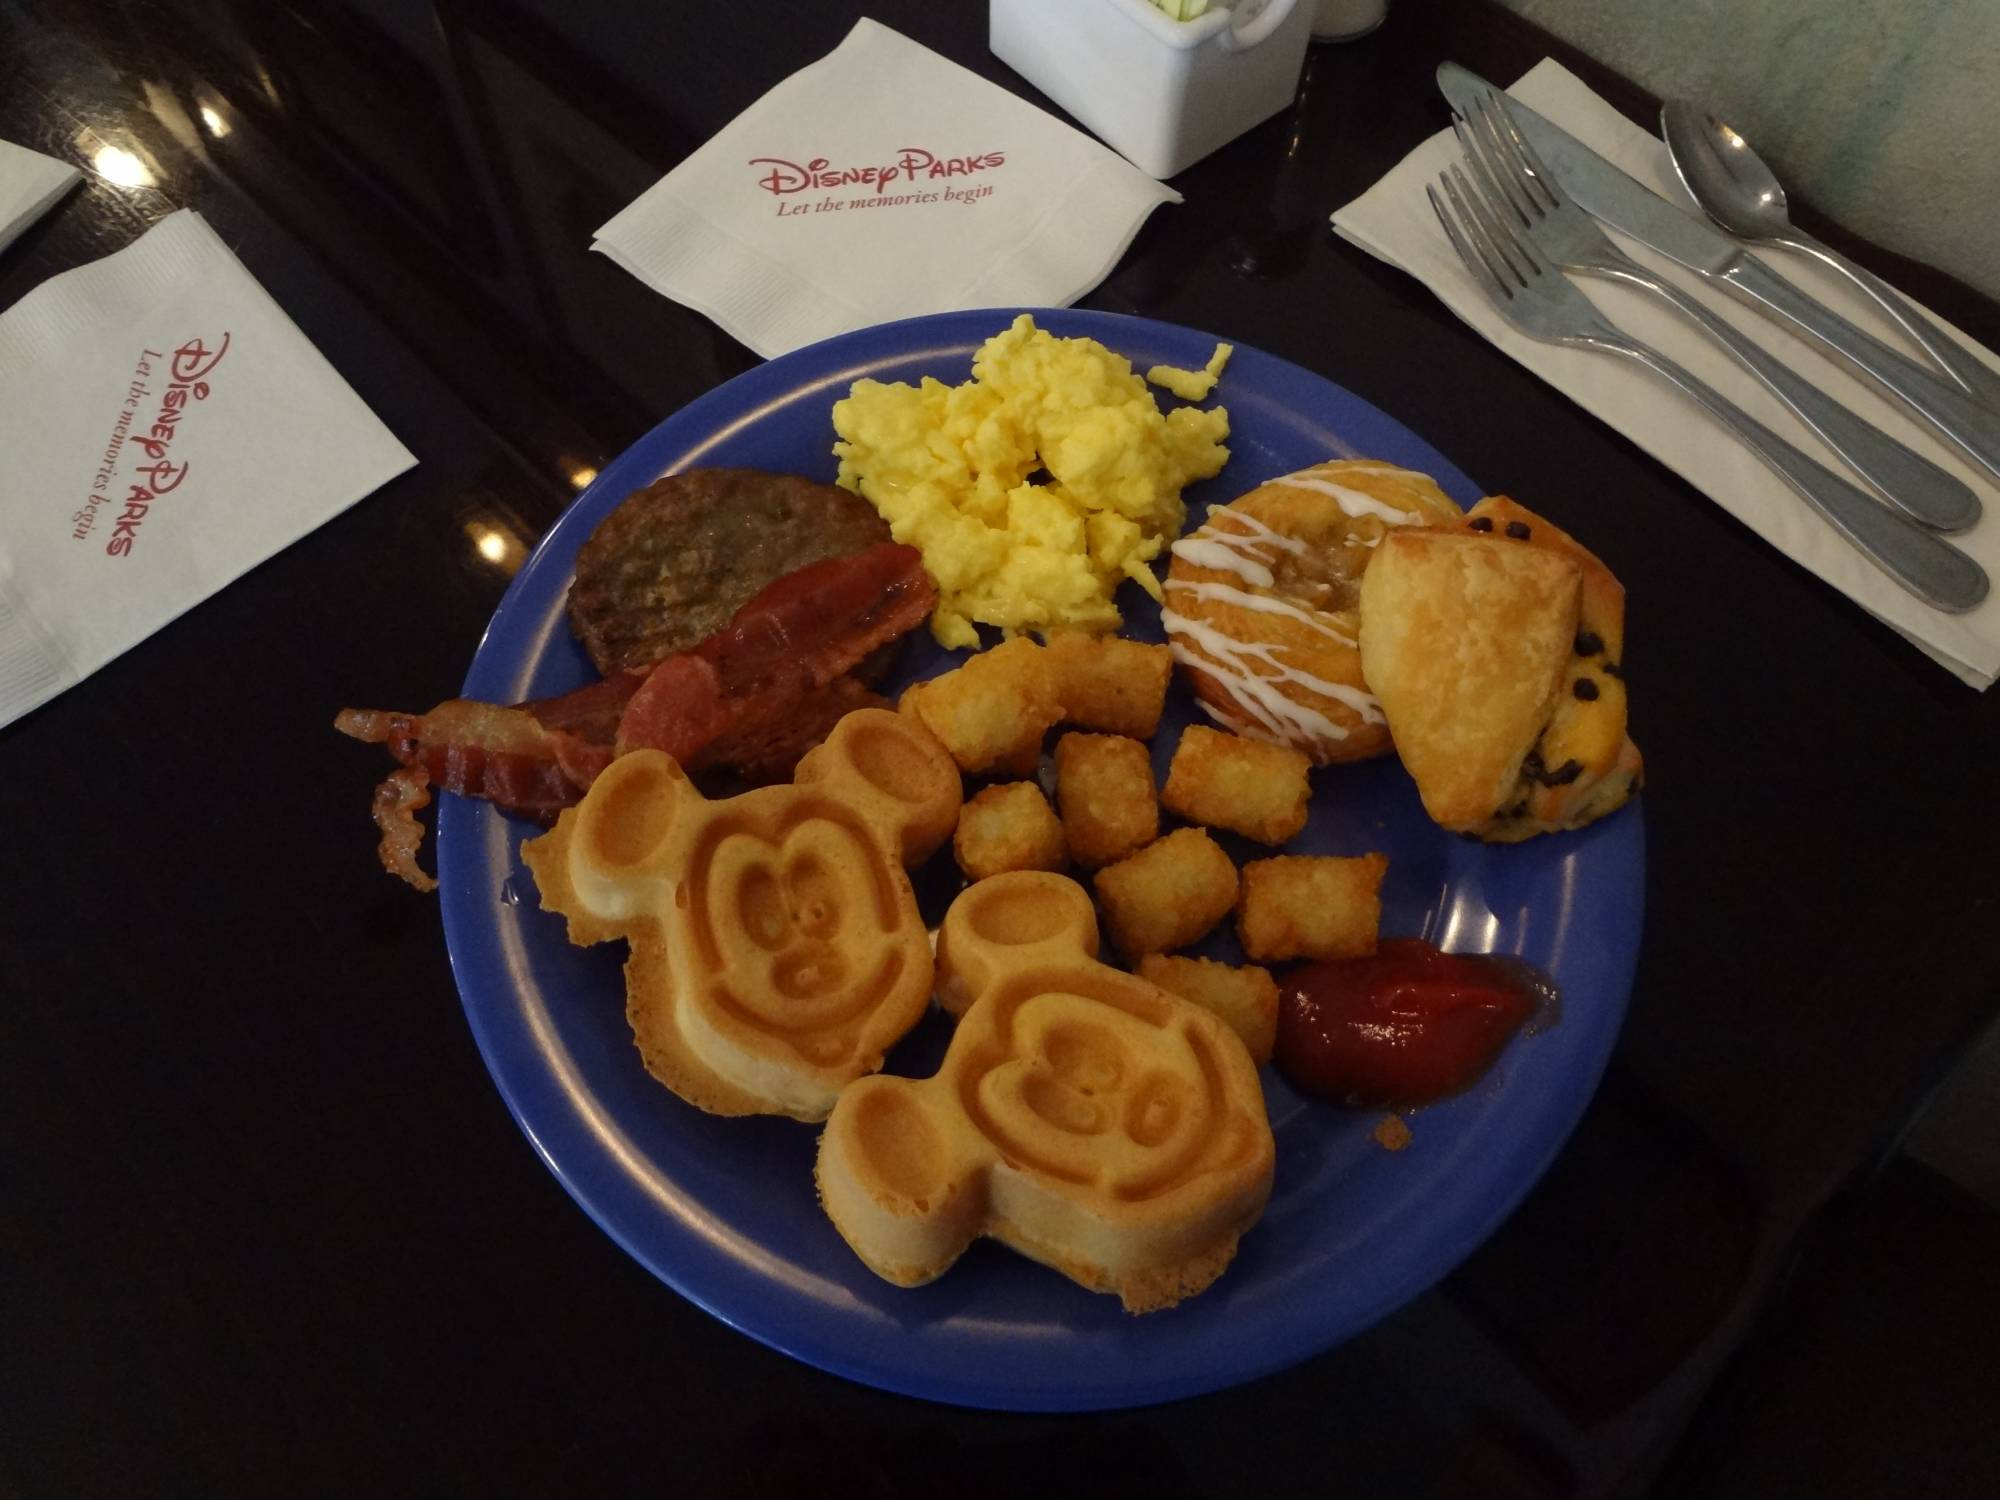 Stretch your dining dollars by having breakfast in your Disney hotel room | PassPorter.com